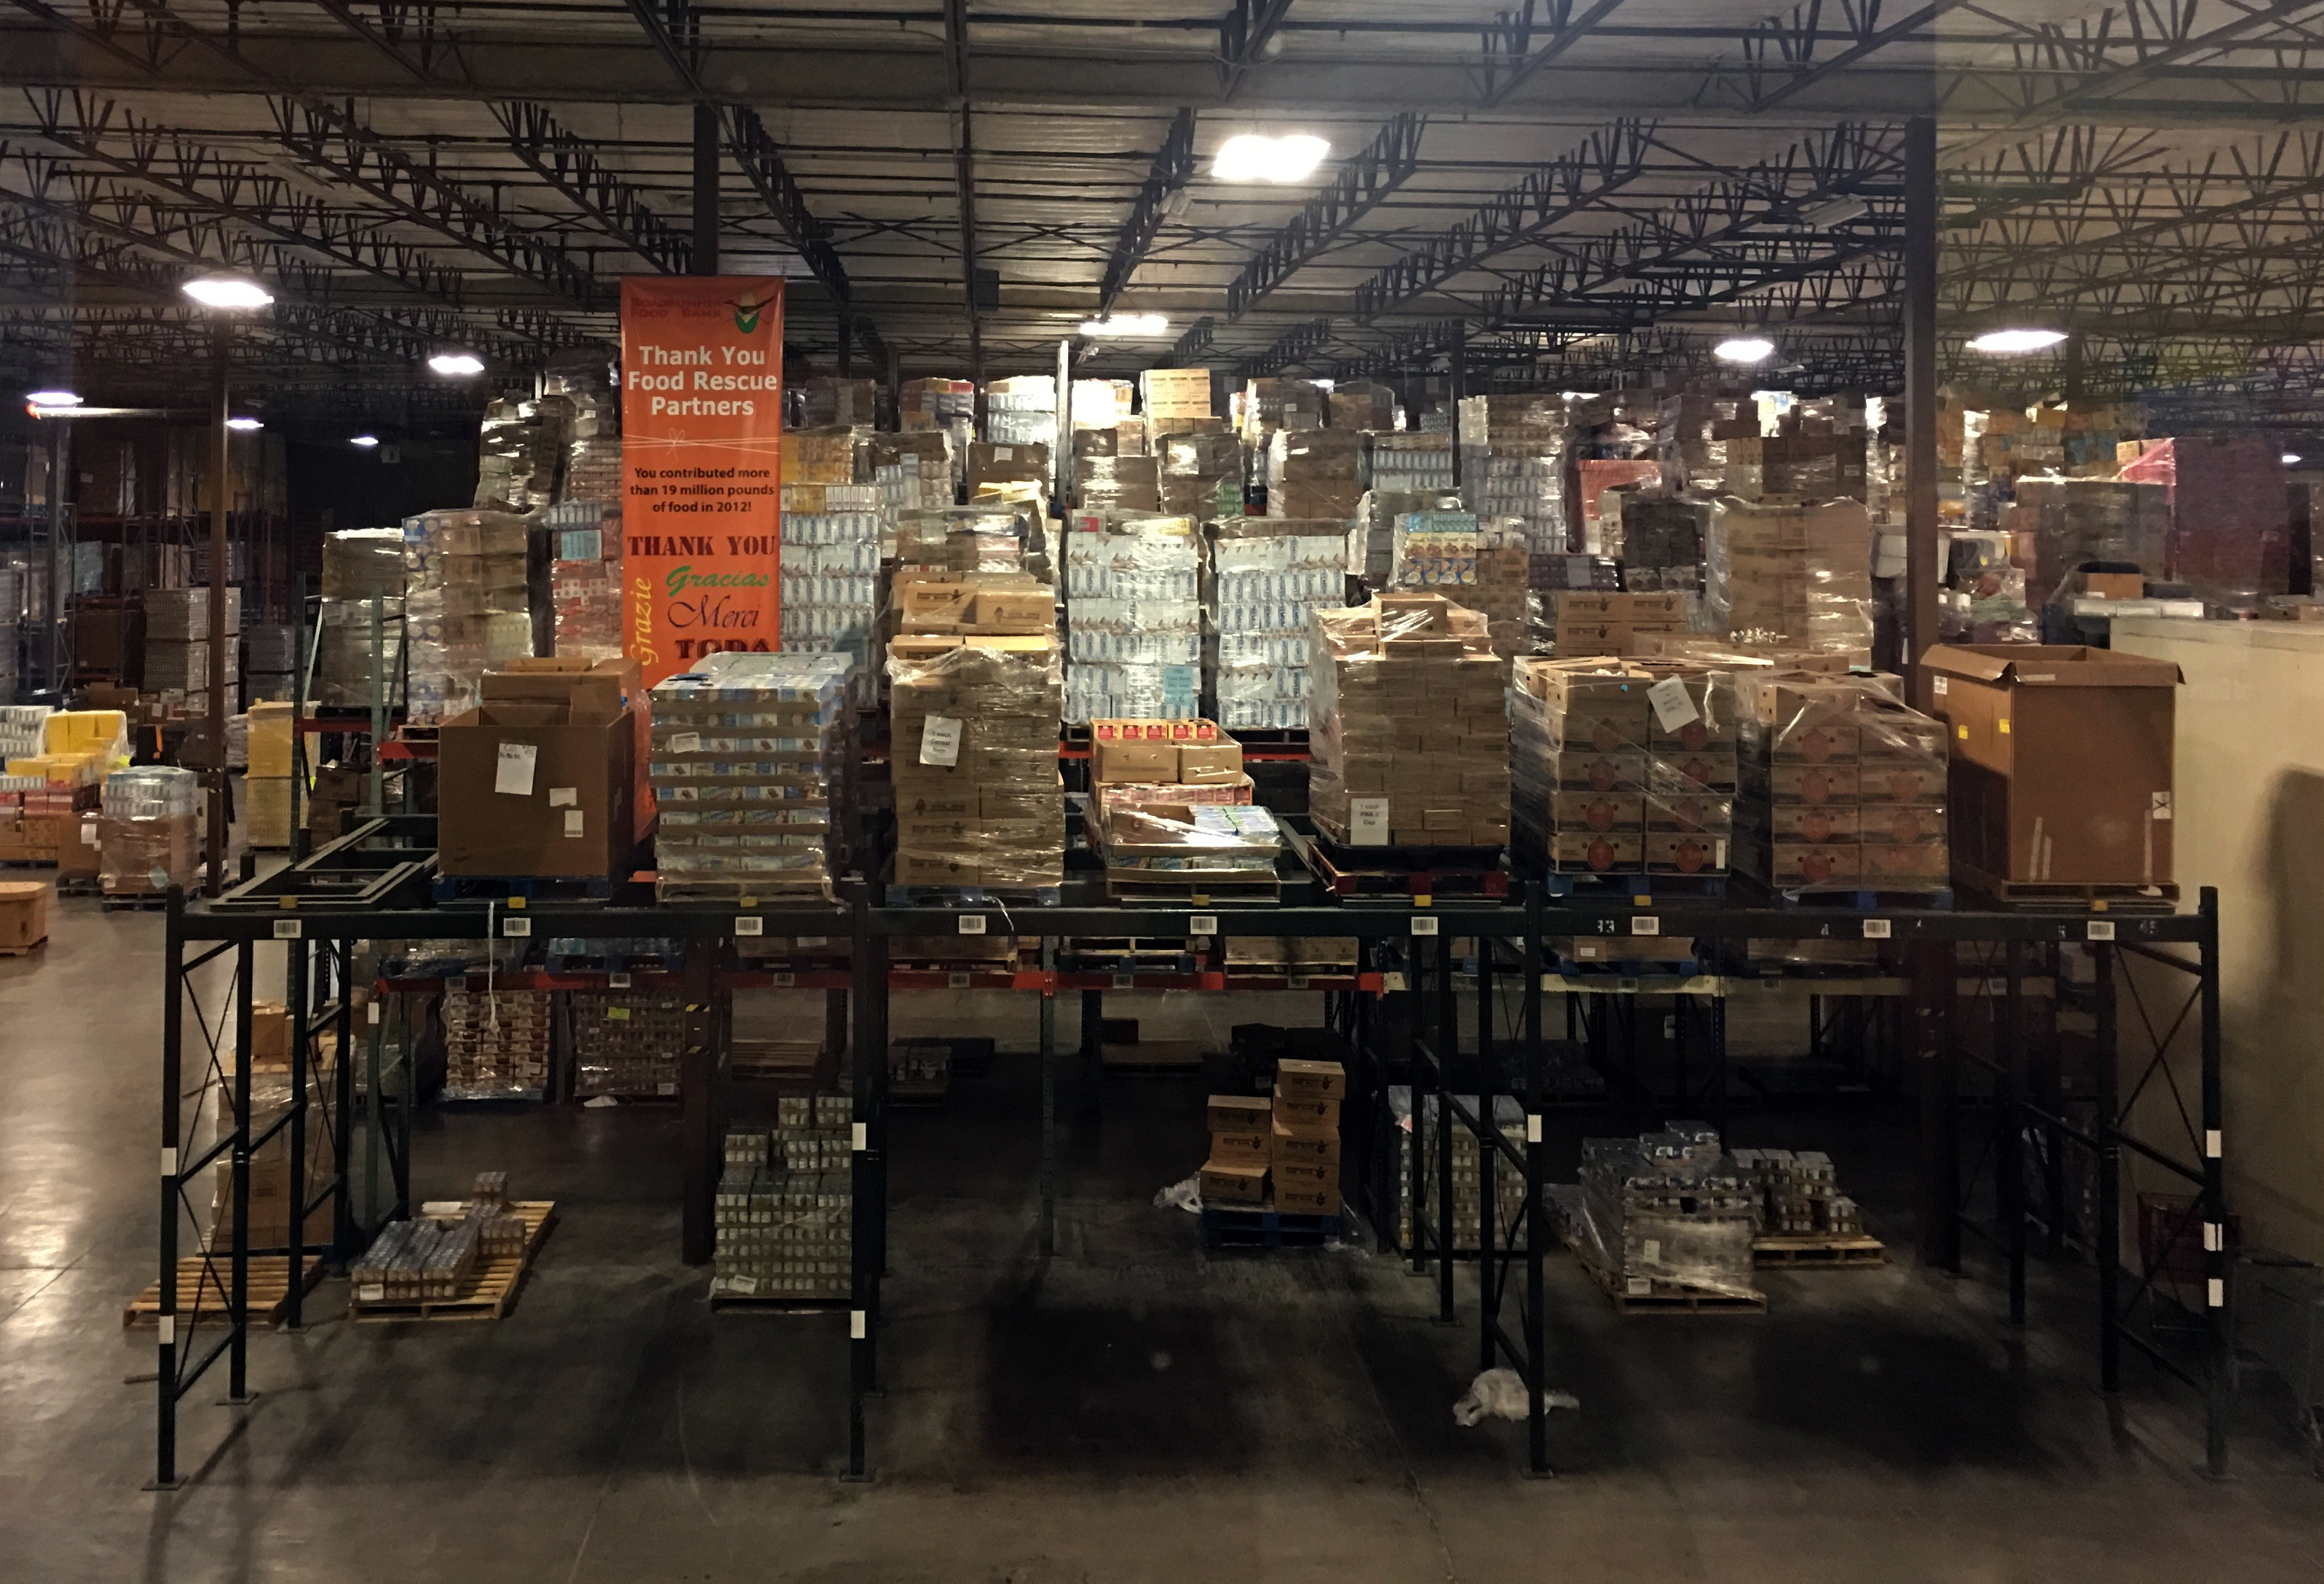 Piles of food and commodities in a large warehouse.